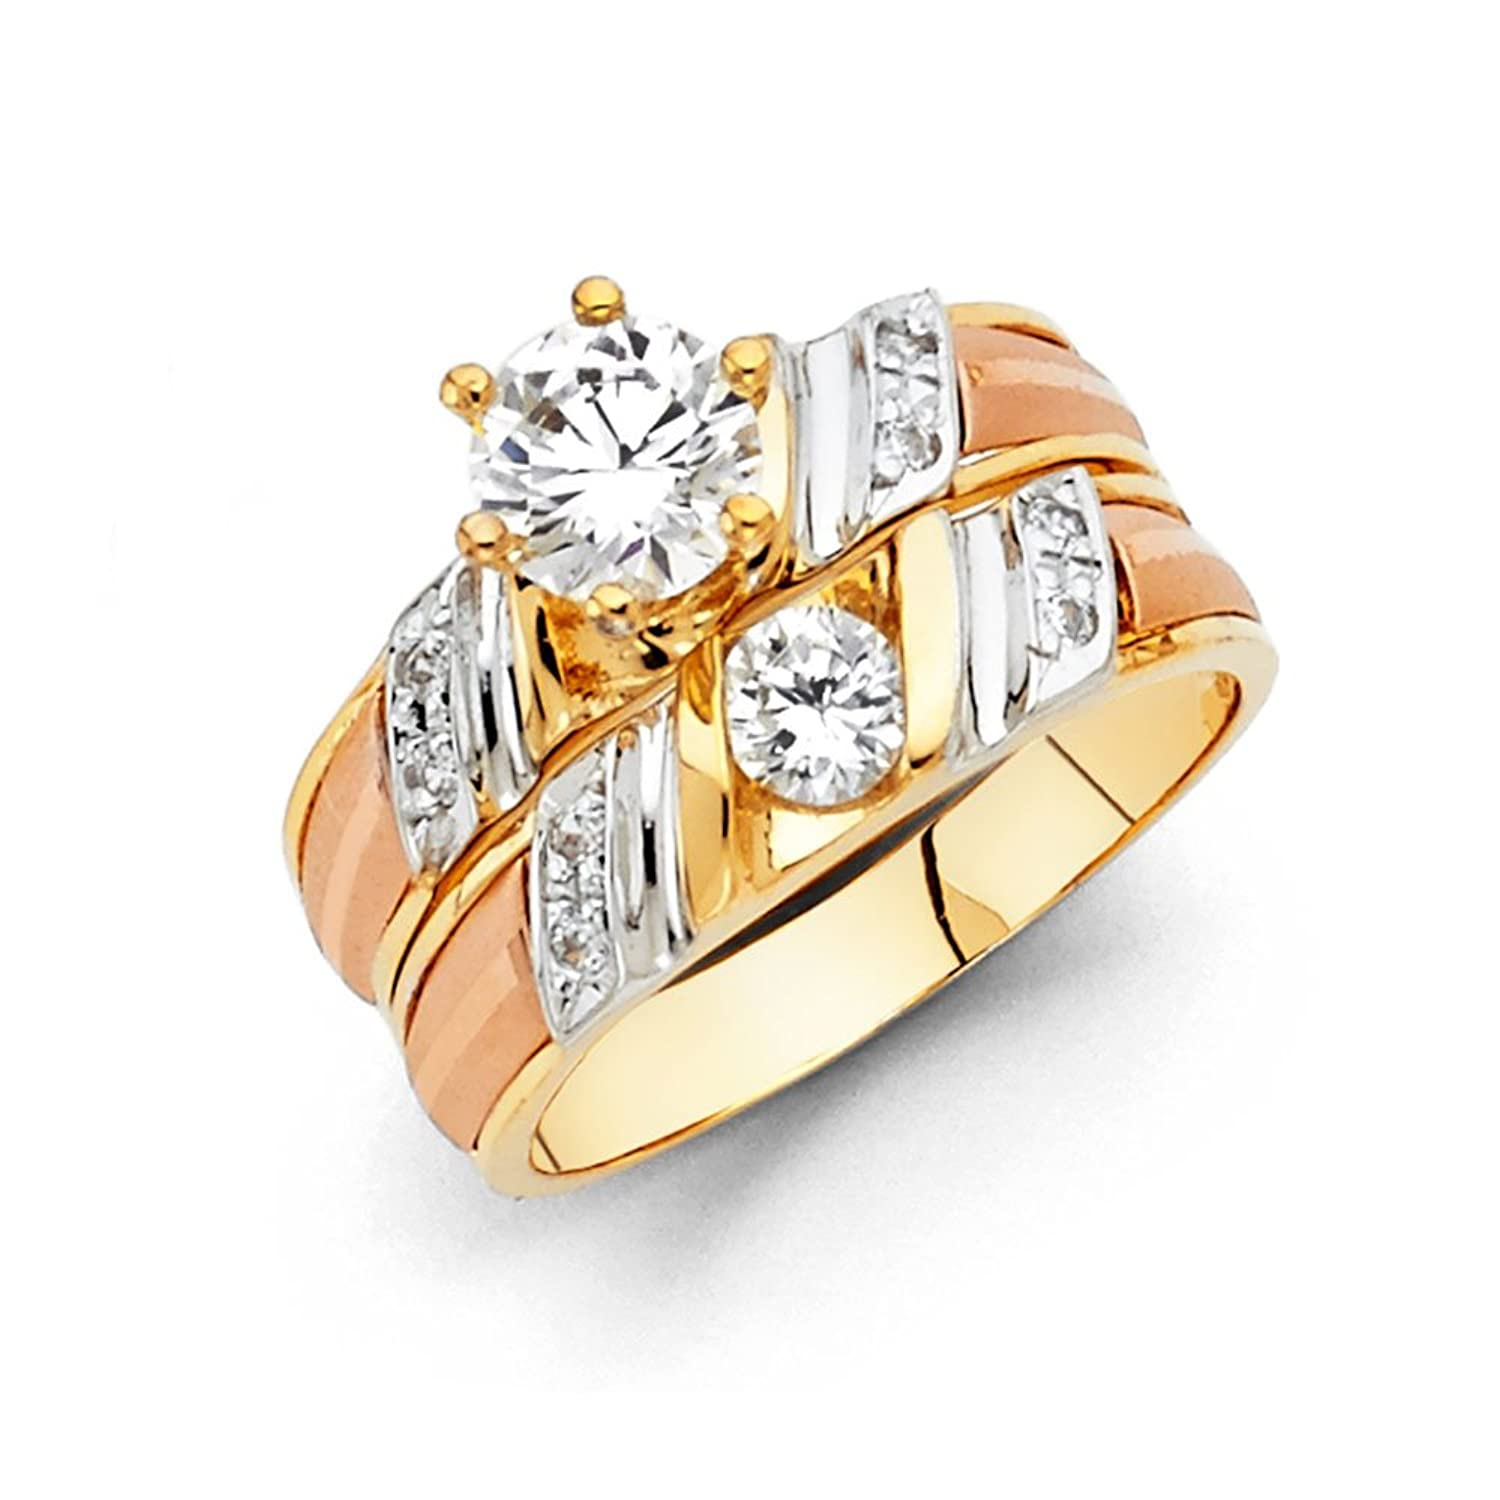 htm color rings women diamonds a at braid tcw comfort french wedding band gold white fit shop s ring store pc tri